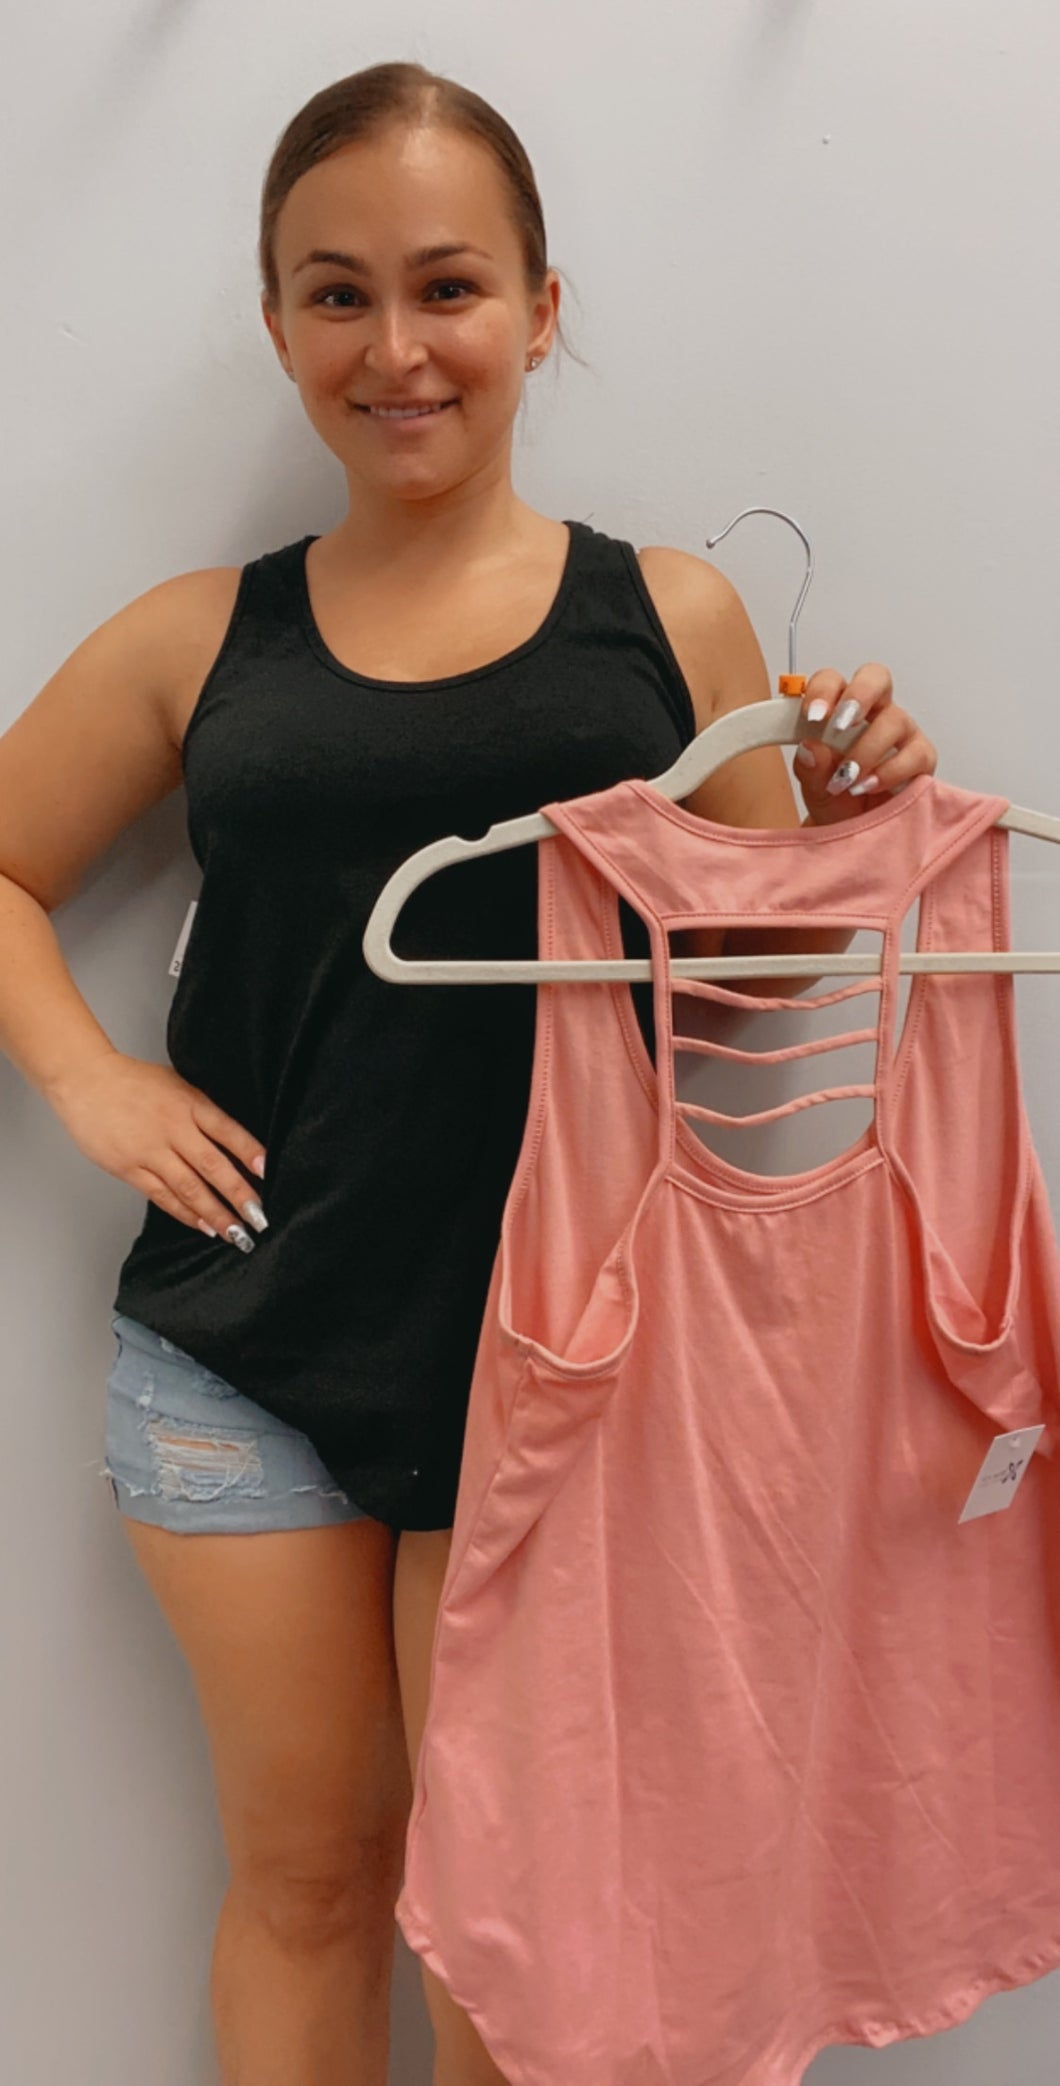 Scoop neck tank with cut out detail